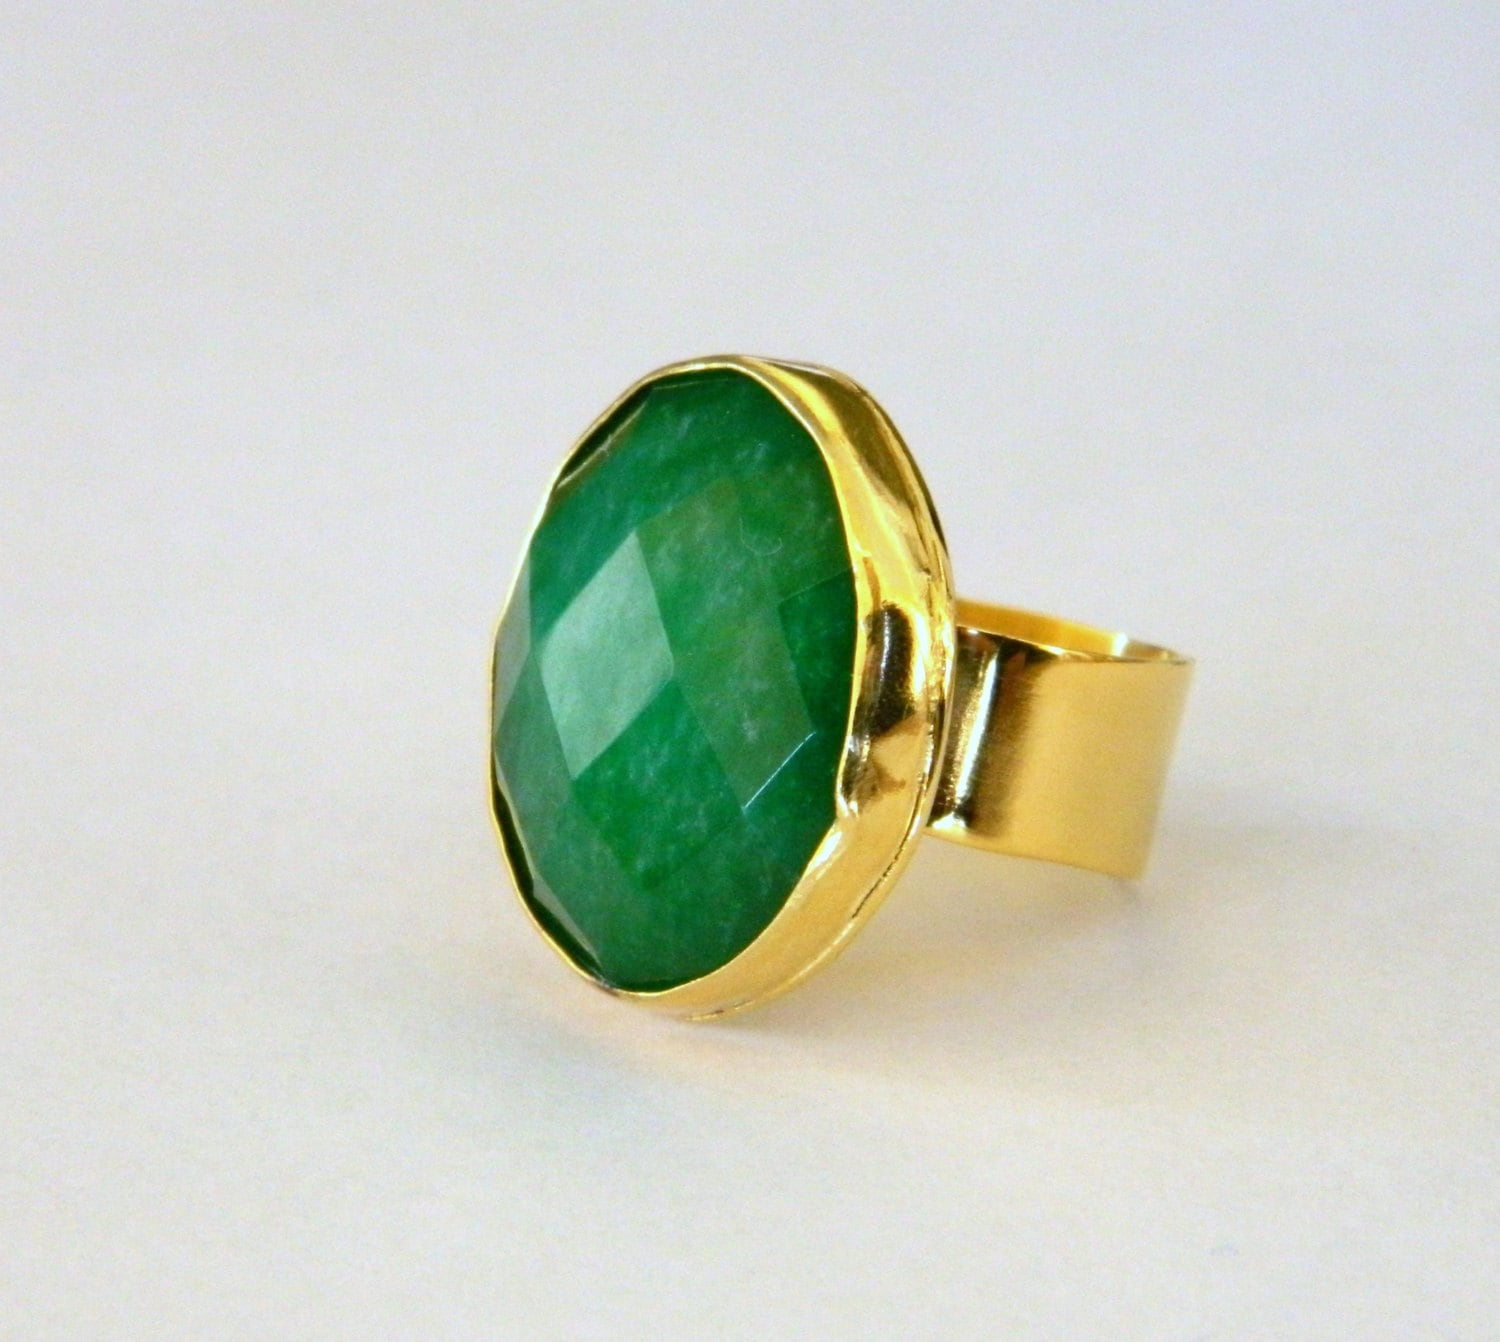 emerald femme from vintage black engagement female gold in filled women for rings bague wedding bands item jewelry ring fashion green